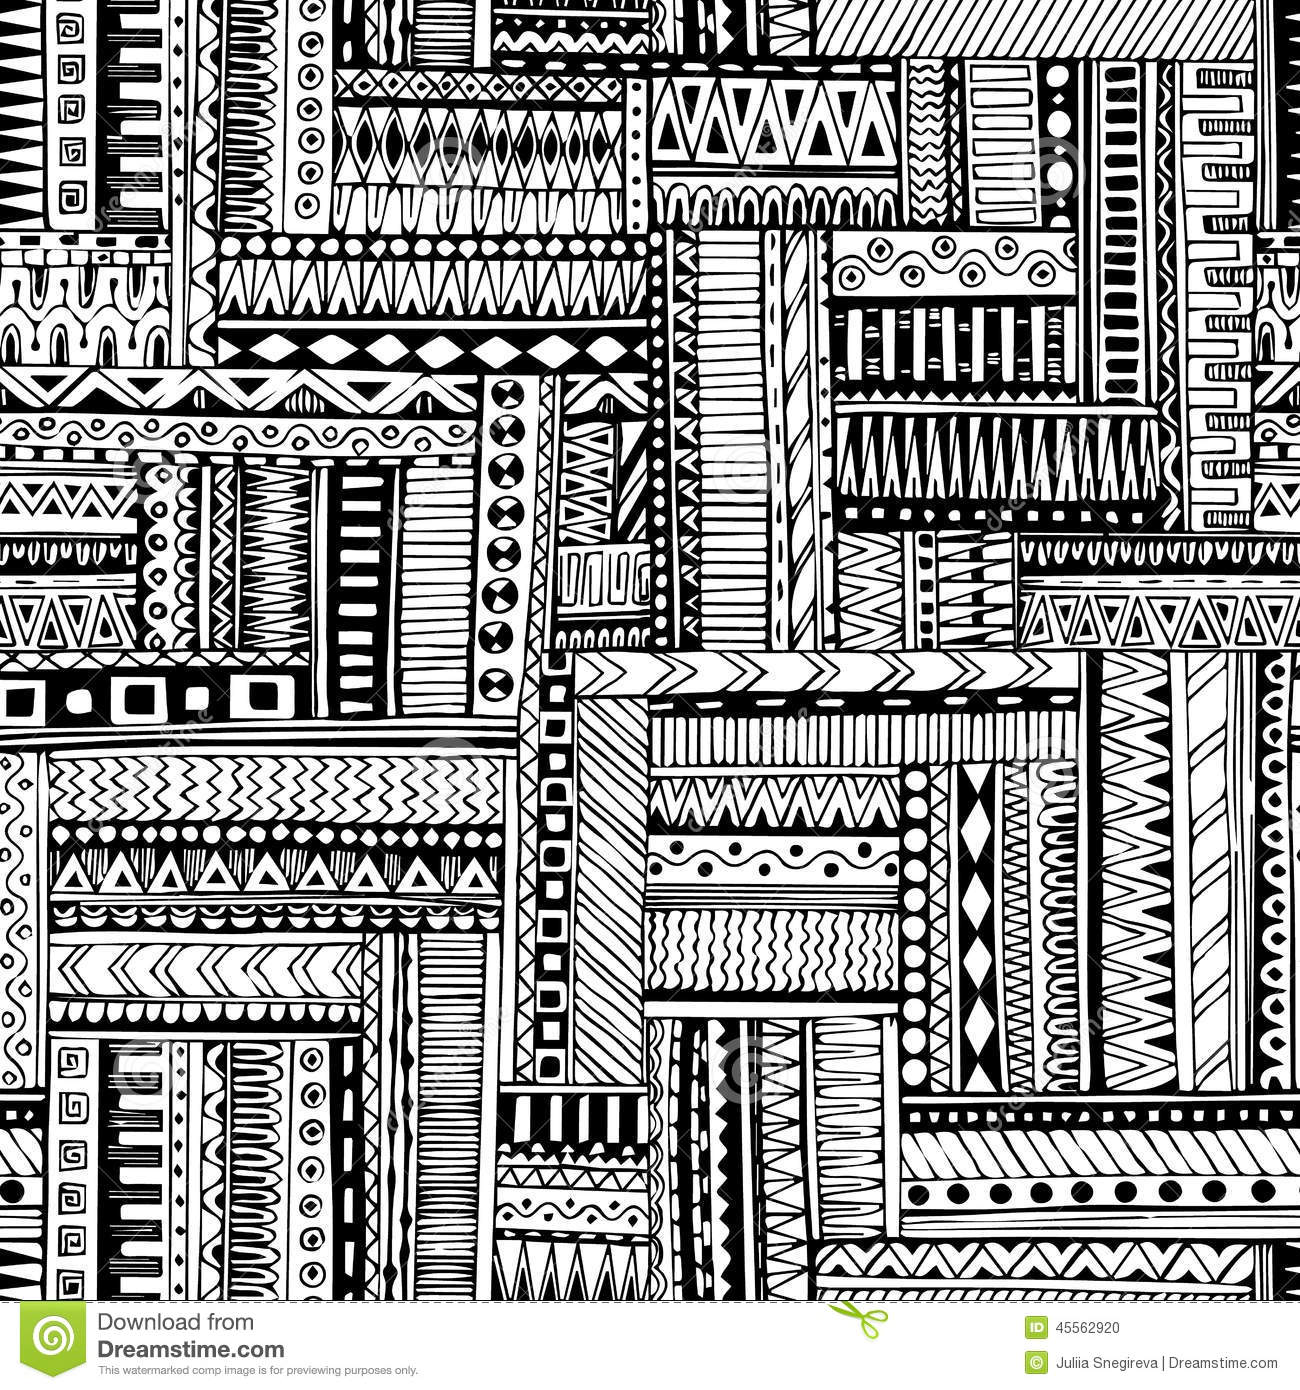 Abstract striped textured geometric tribal seamless pattern. Vector black and white background. Endless texture can be used for wa